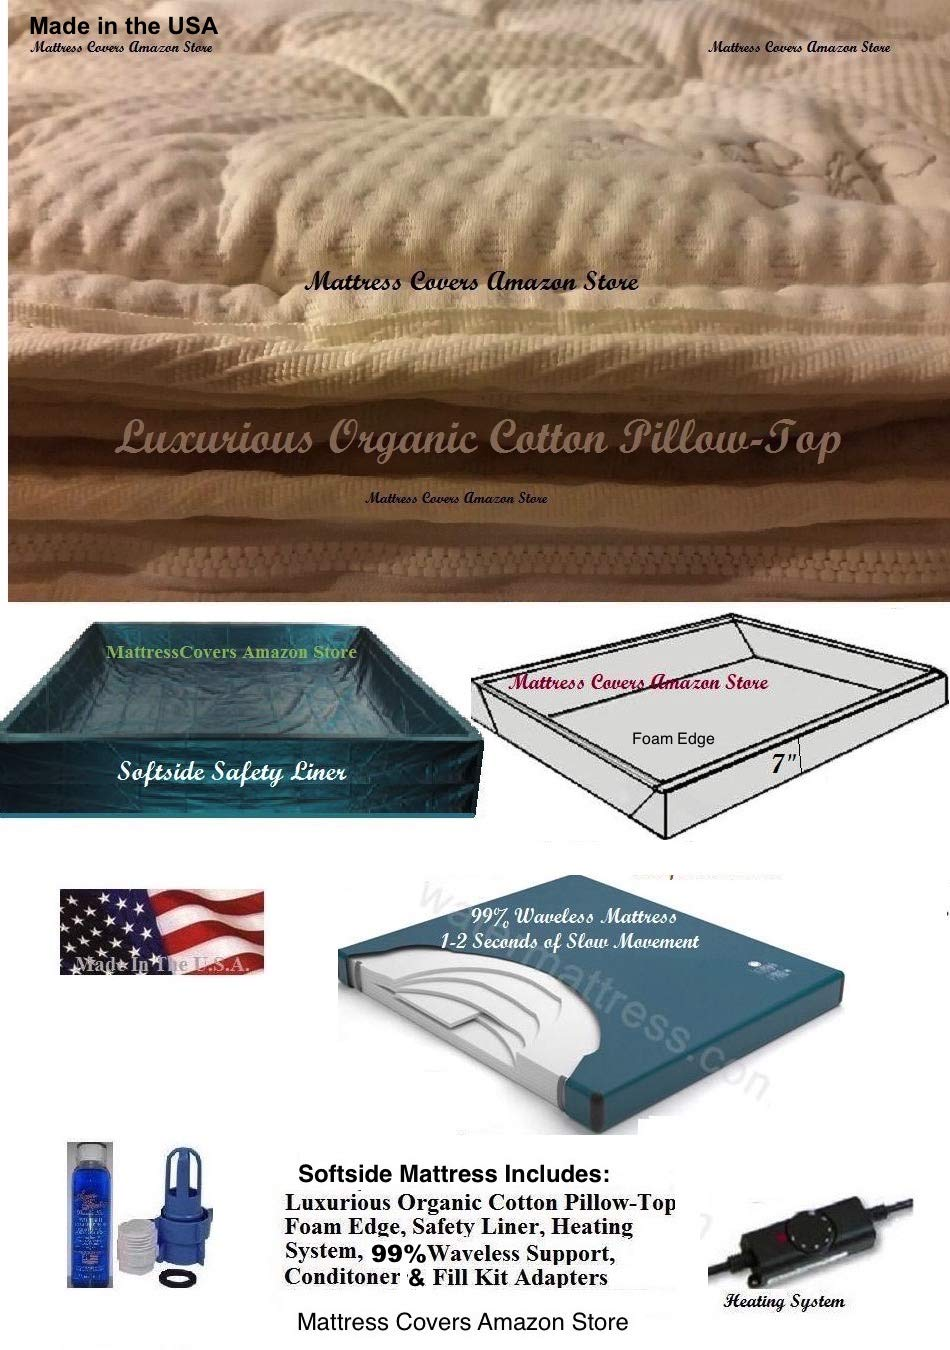 King Softsided Waterbed Mattress with Cotton Pillowtop & 99 Percent Waveless Support